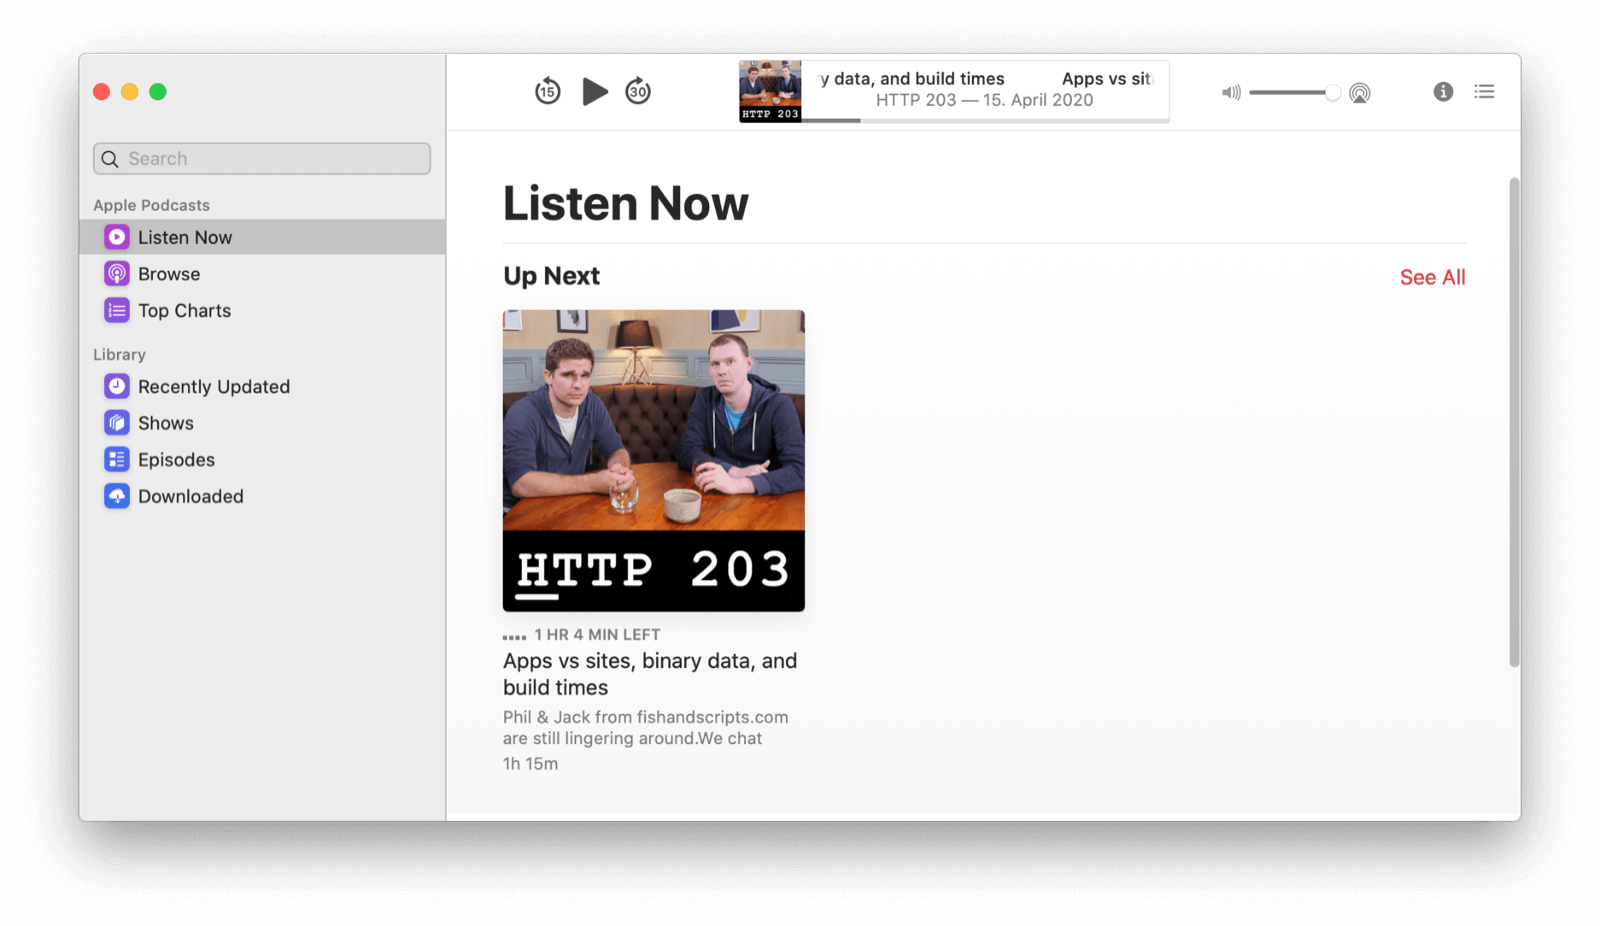 The Podcasts app in light mode.